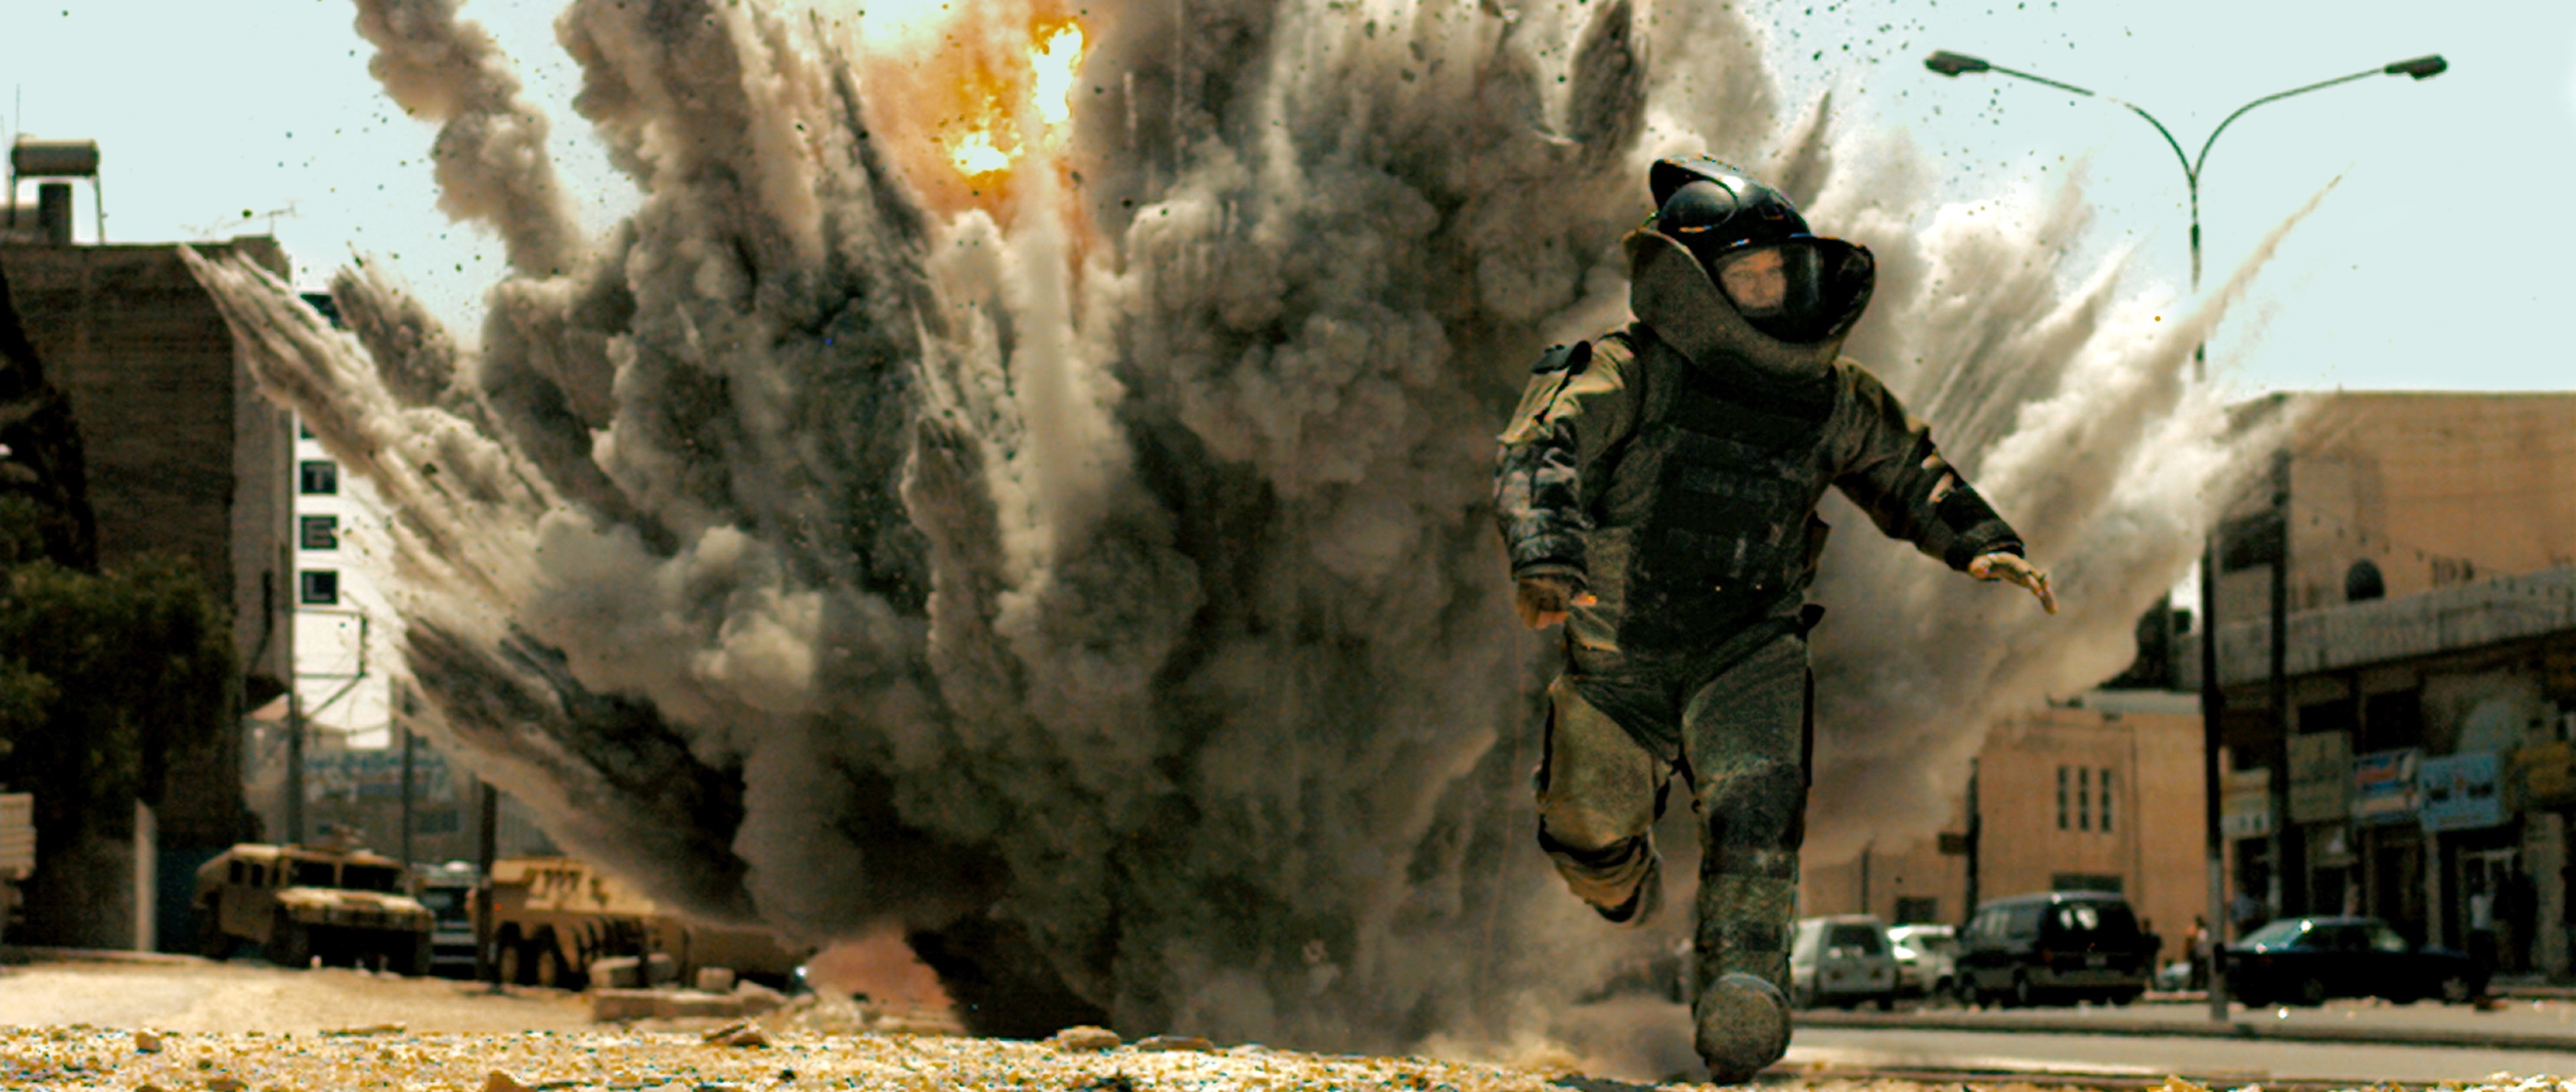 The Hurt Locker – et crescendo av intensitet